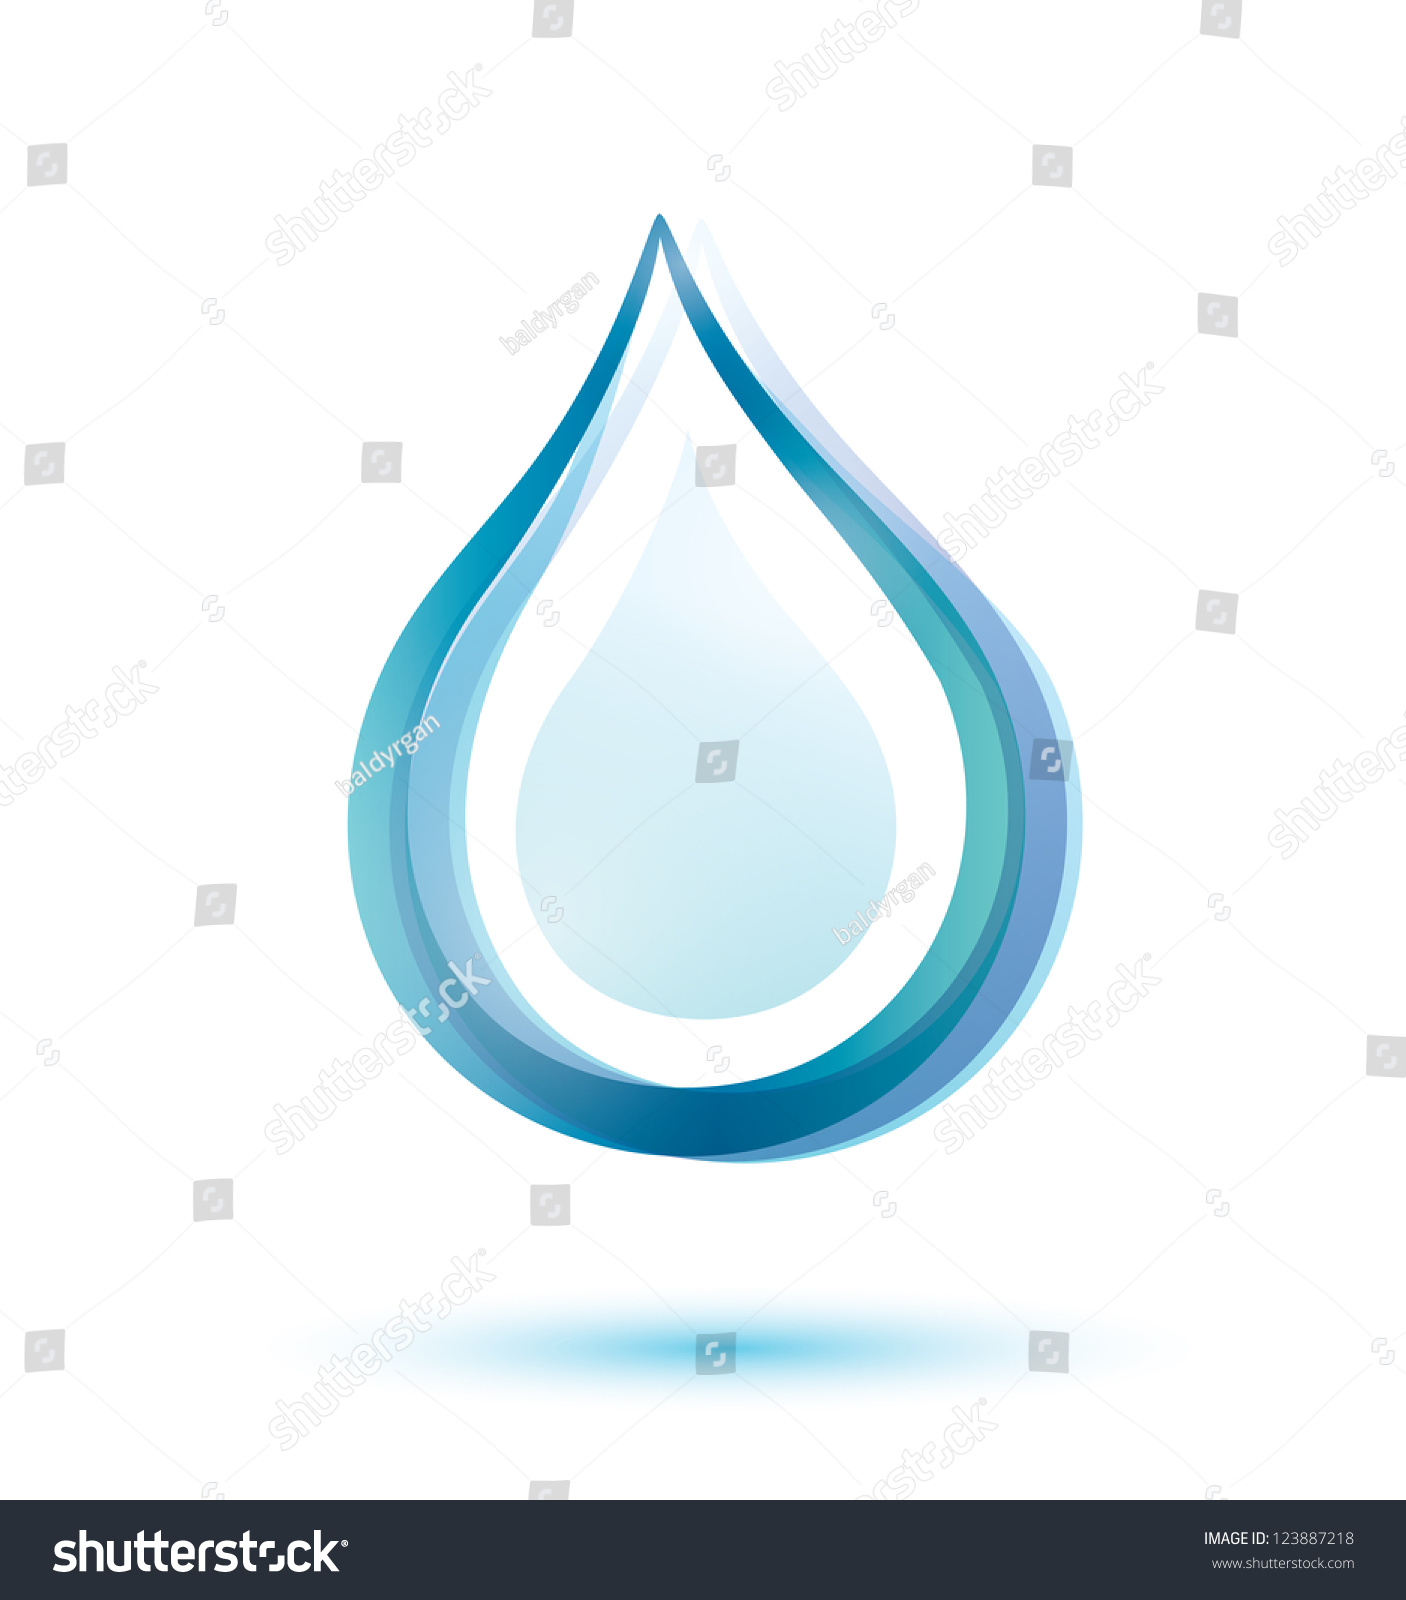 Water drop isolated vector symbol stock vector 123887218 water drop isolated vector symbol biocorpaavc Image collections